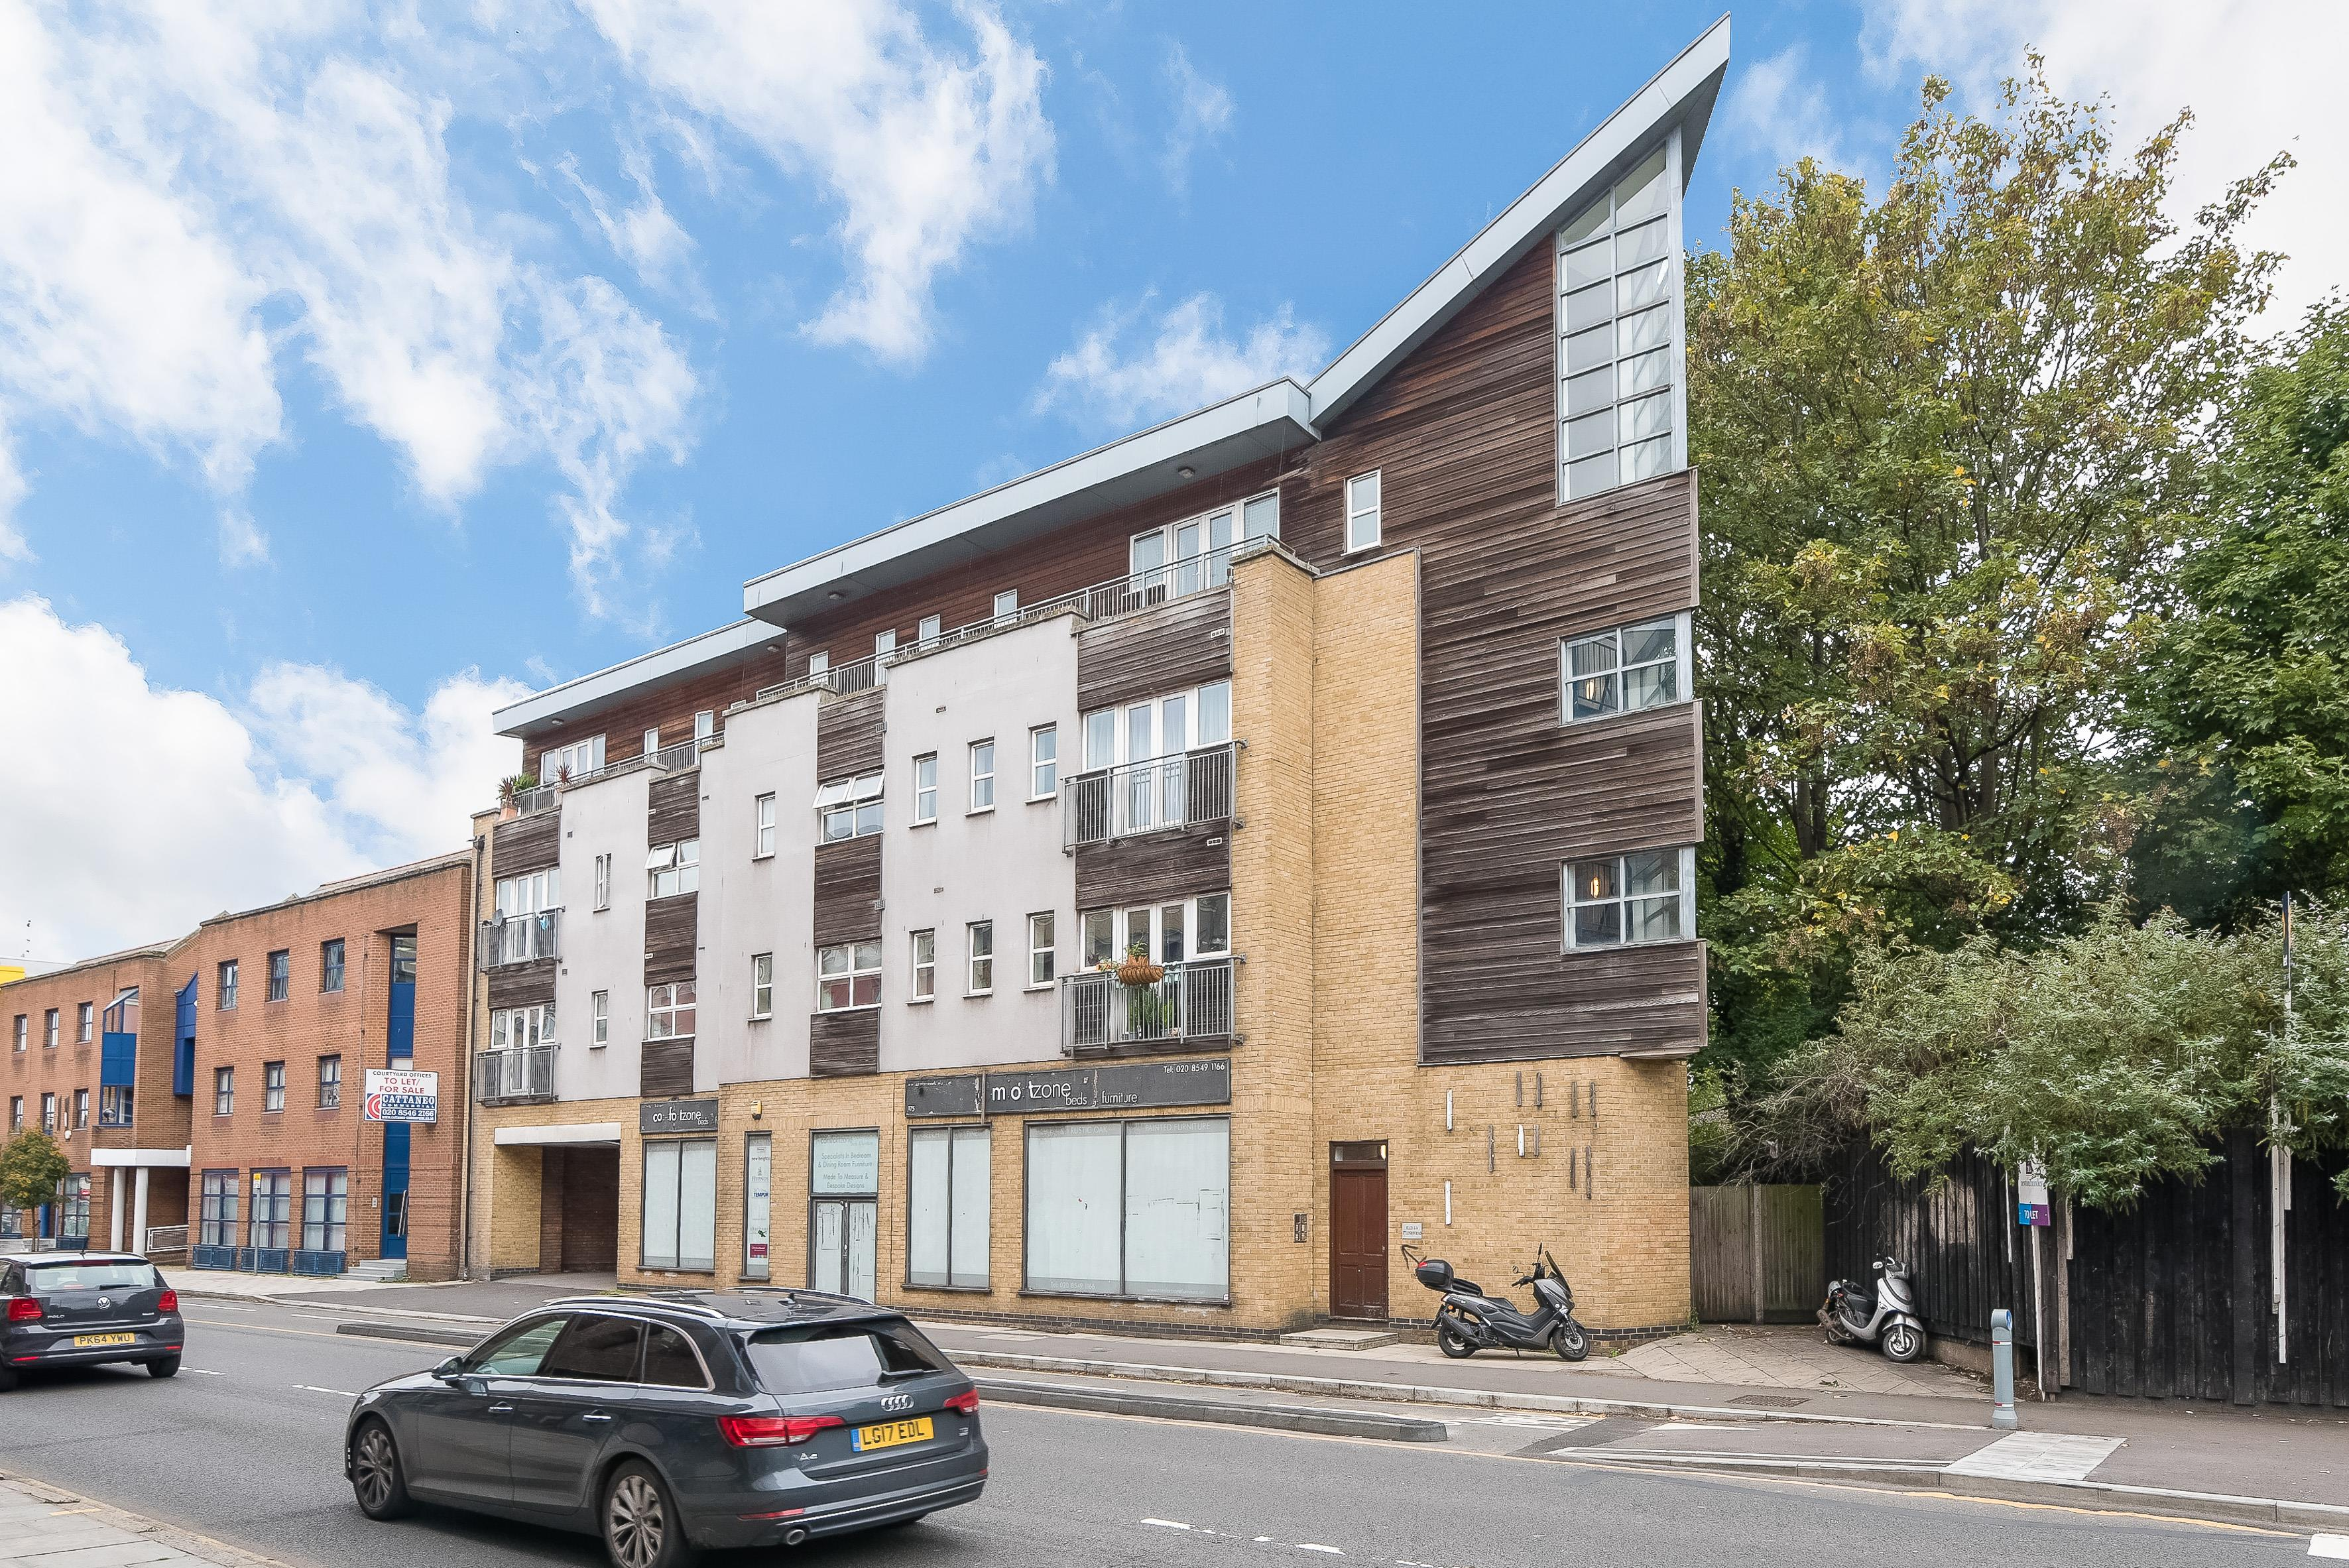 2 bed Flat for rent in Kingston upon Thames. From Featherstone Leigh - Kingston Sales